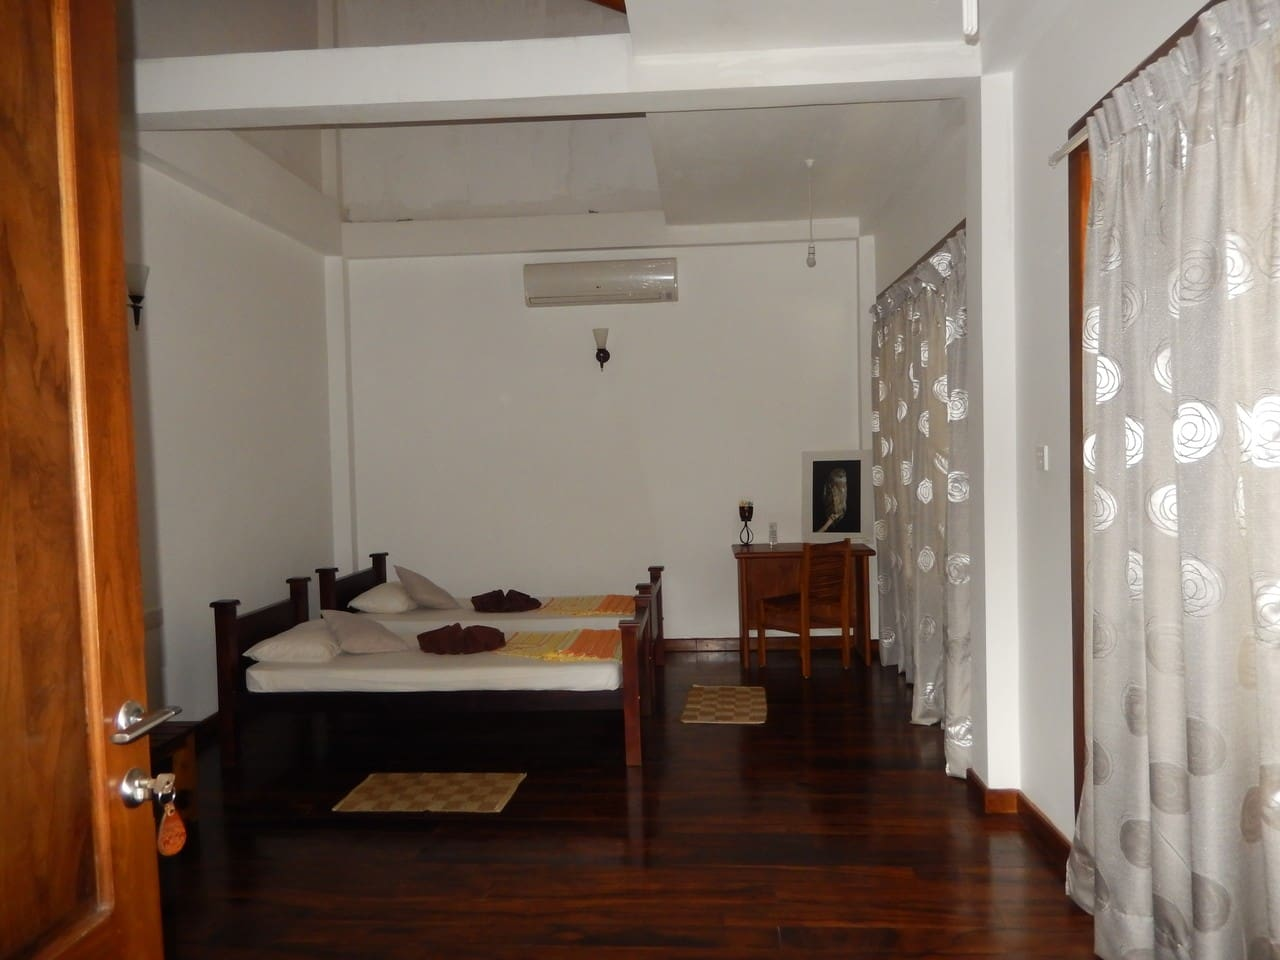 The bed, if desired, double beds and/or an additional bed can be provided